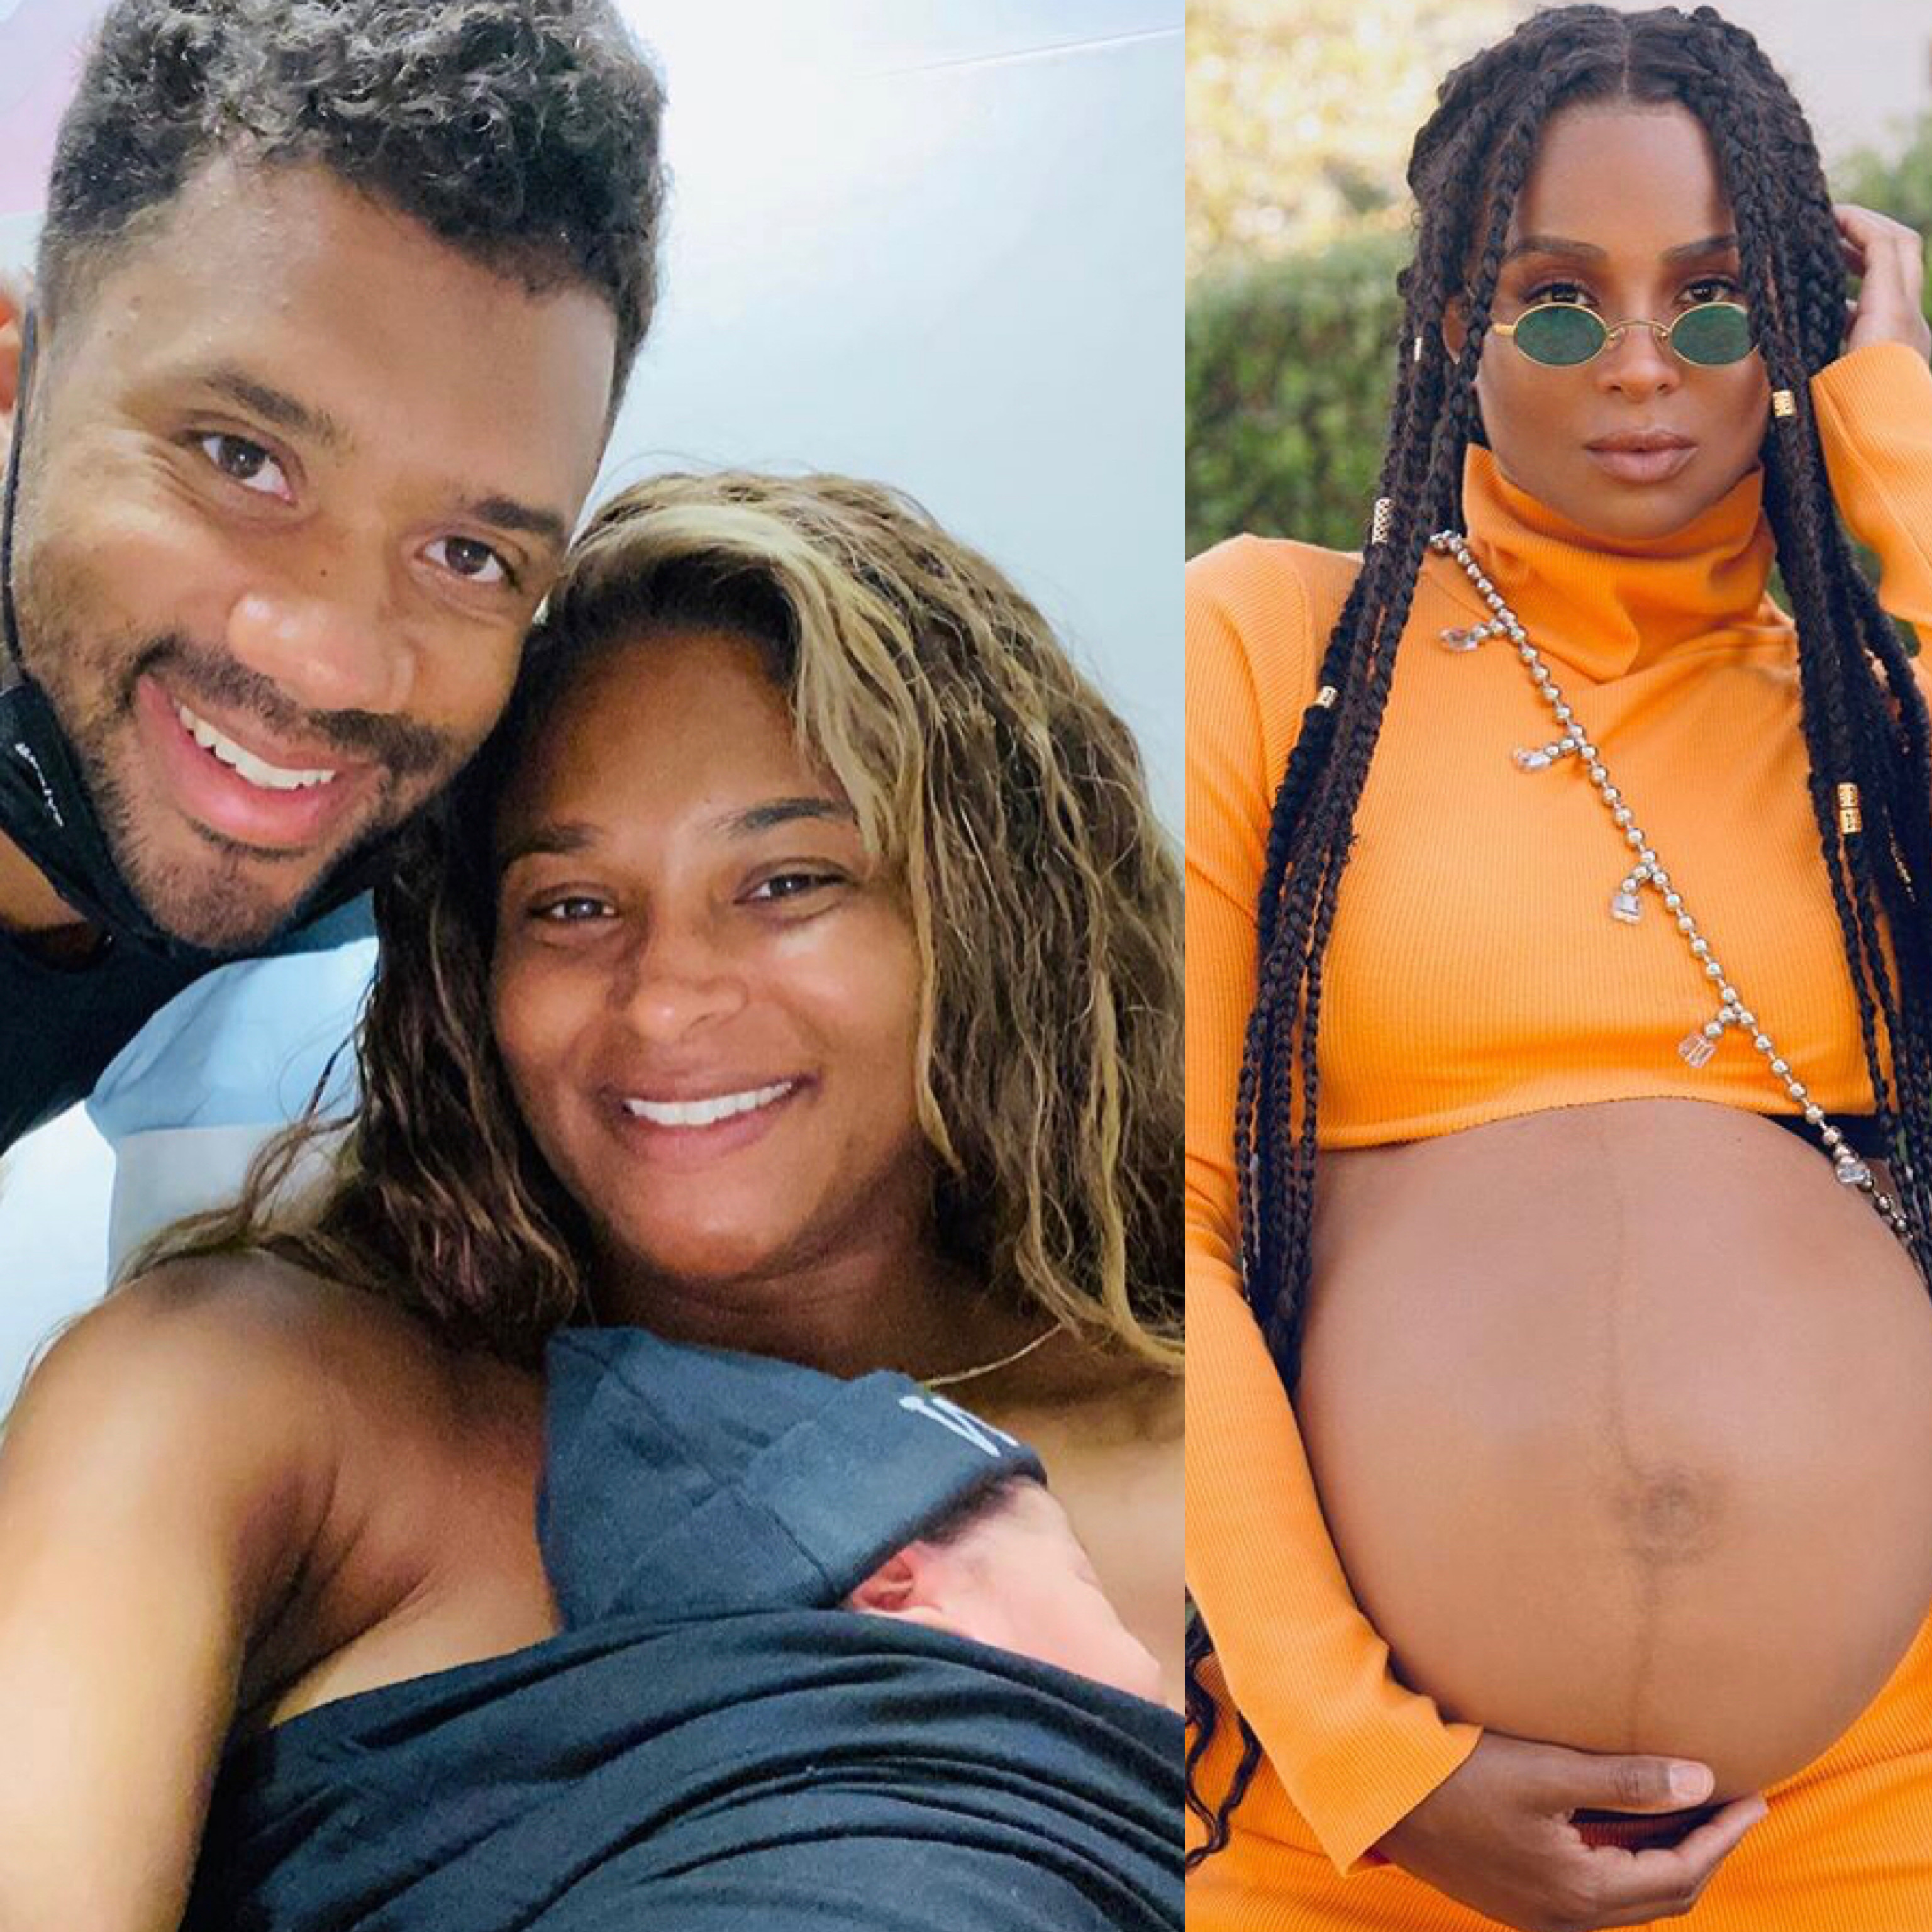 Singer Ciara And Husband Russell Wilson Welcome Baby Boy, Names Him Win